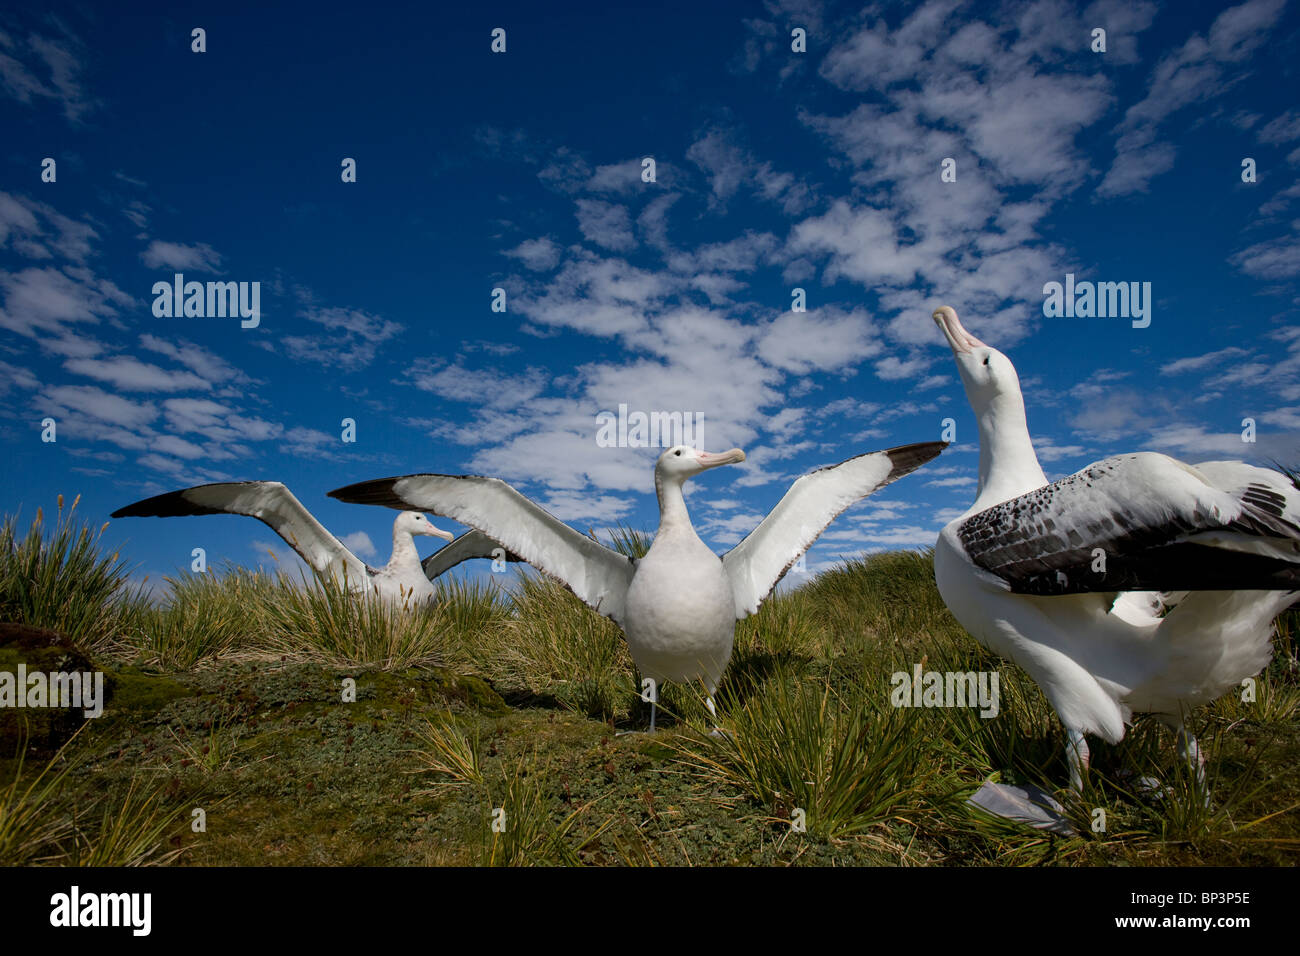 Antarctica, South Georgia Island , Courtship display of Wandering Albatross (Diomedea exulans) on Prion Island Stock Photo